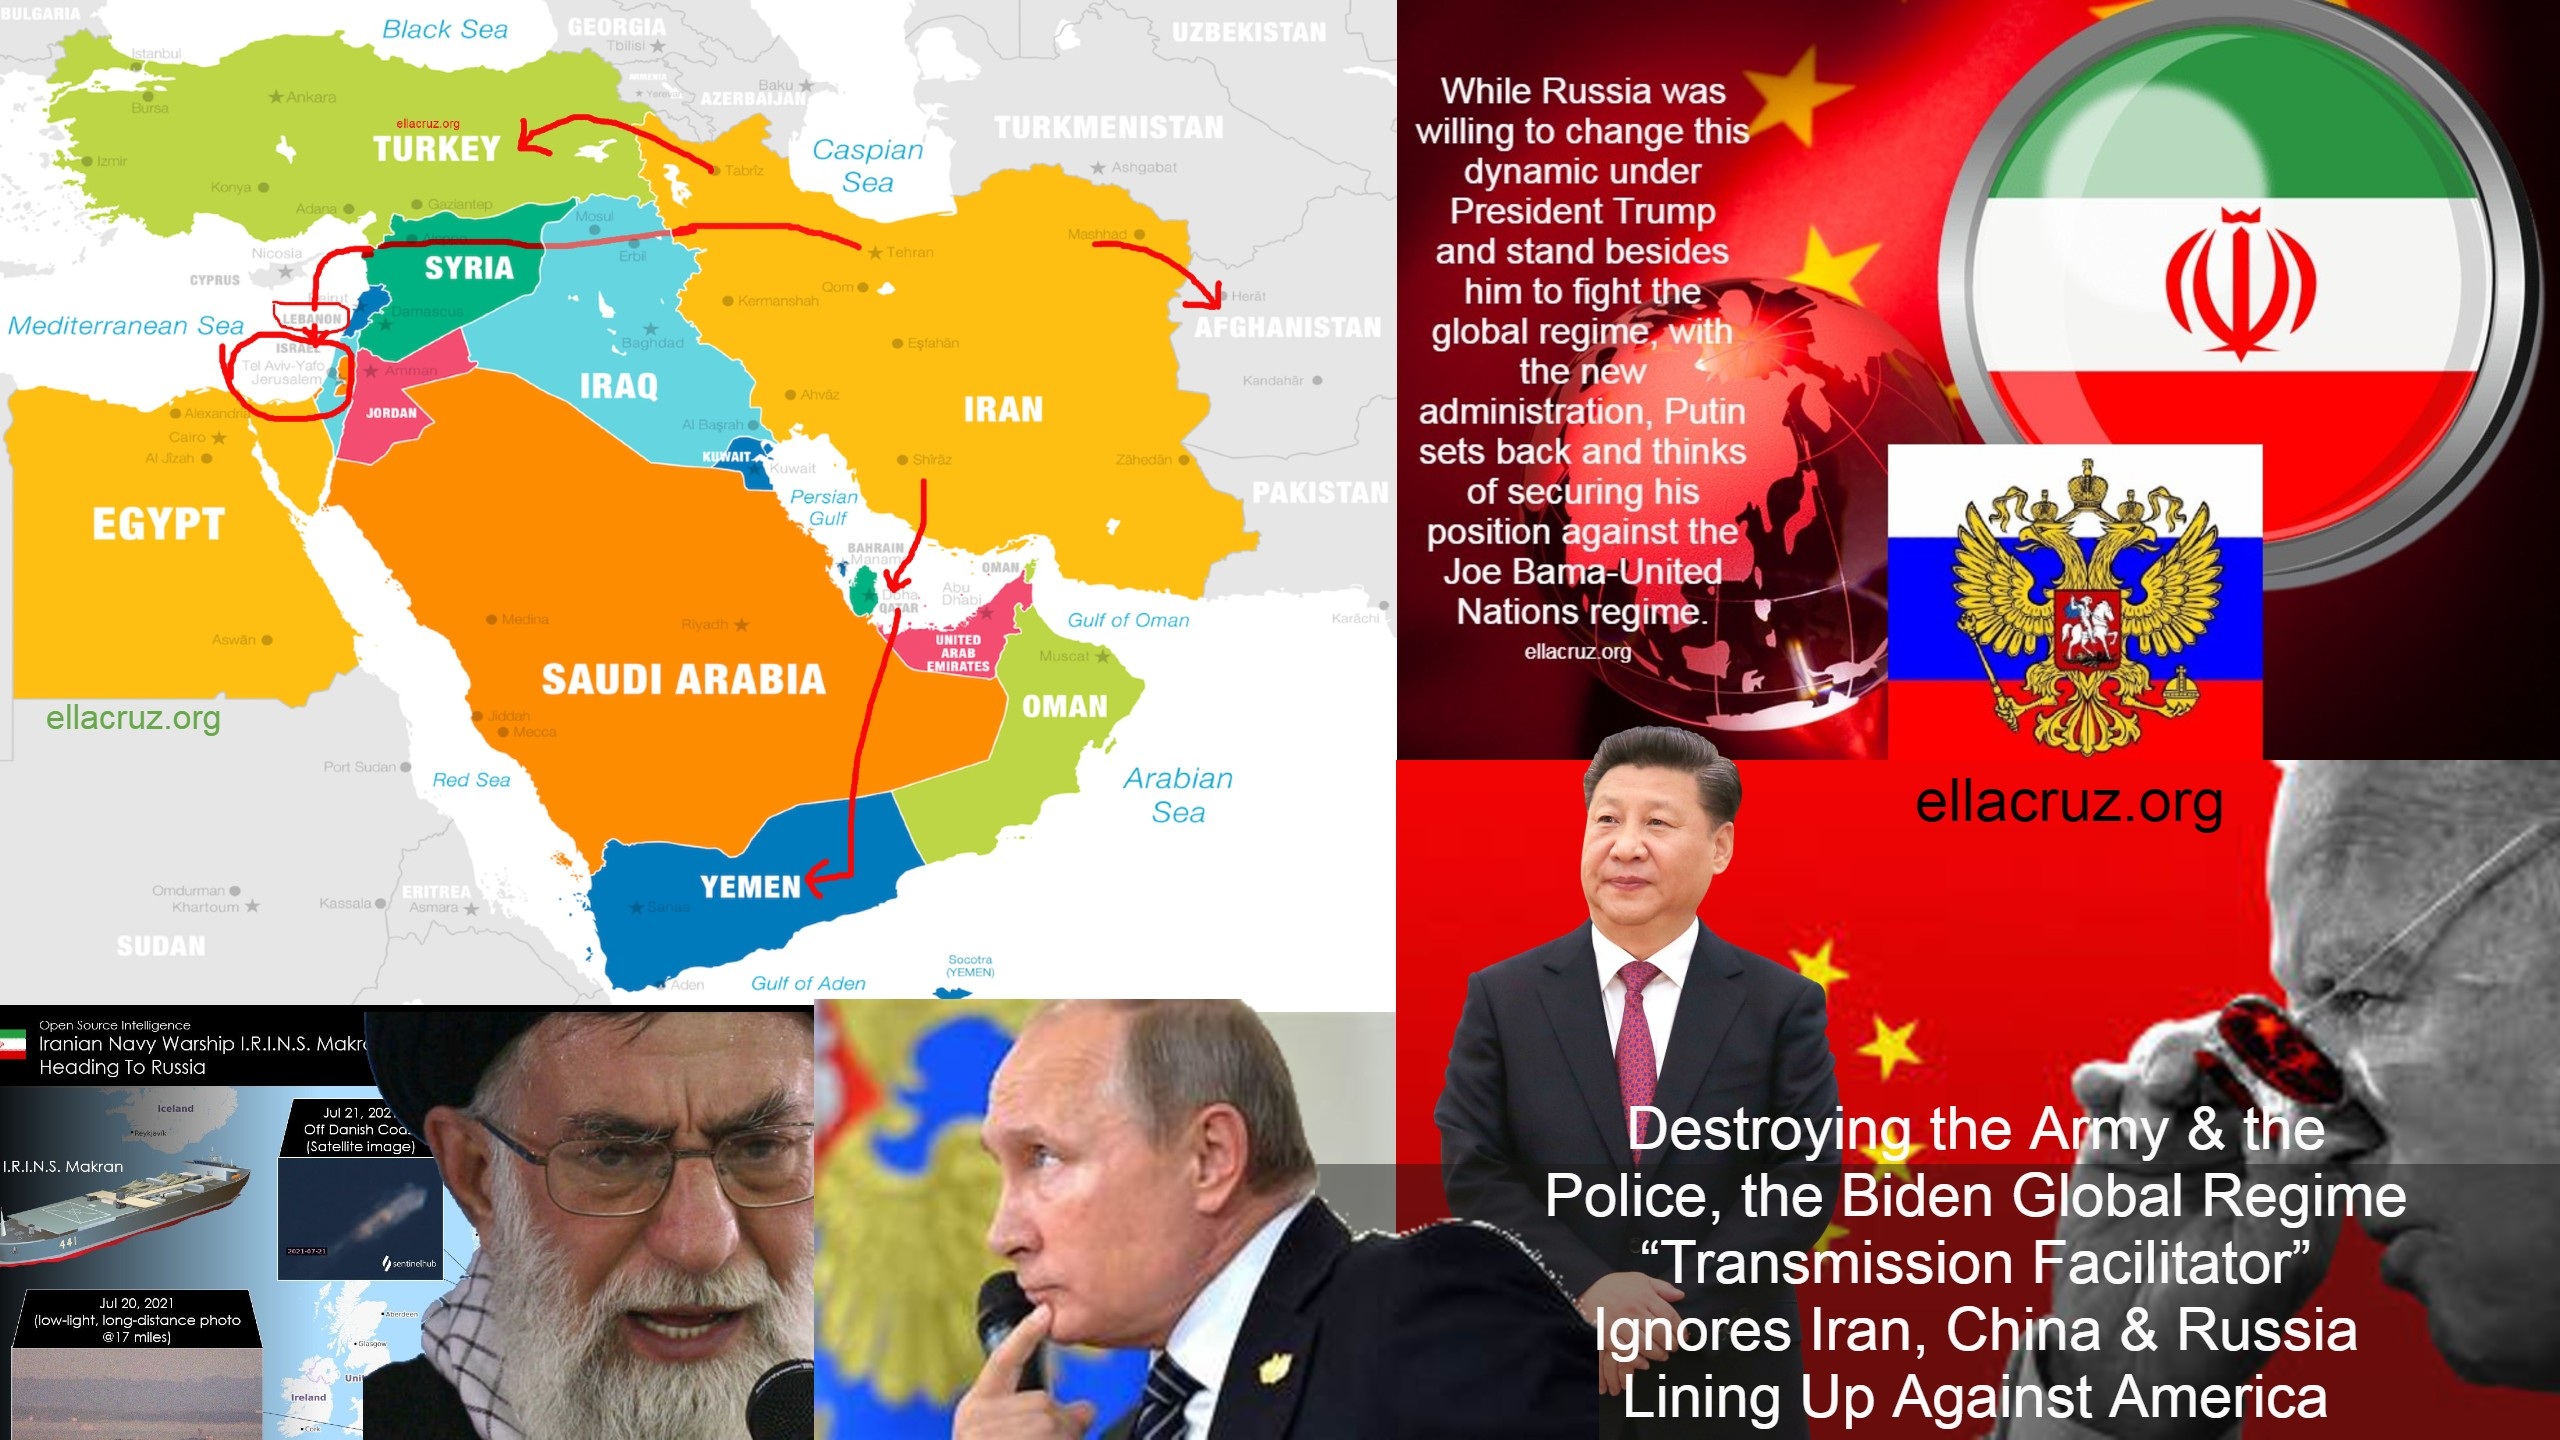 """Destroying the Army & the Police, the Biden Global Regime """"Transmission Facilitator"""" Ignores Iran, China & Russia Lining Up Against America ellacruz.org"""